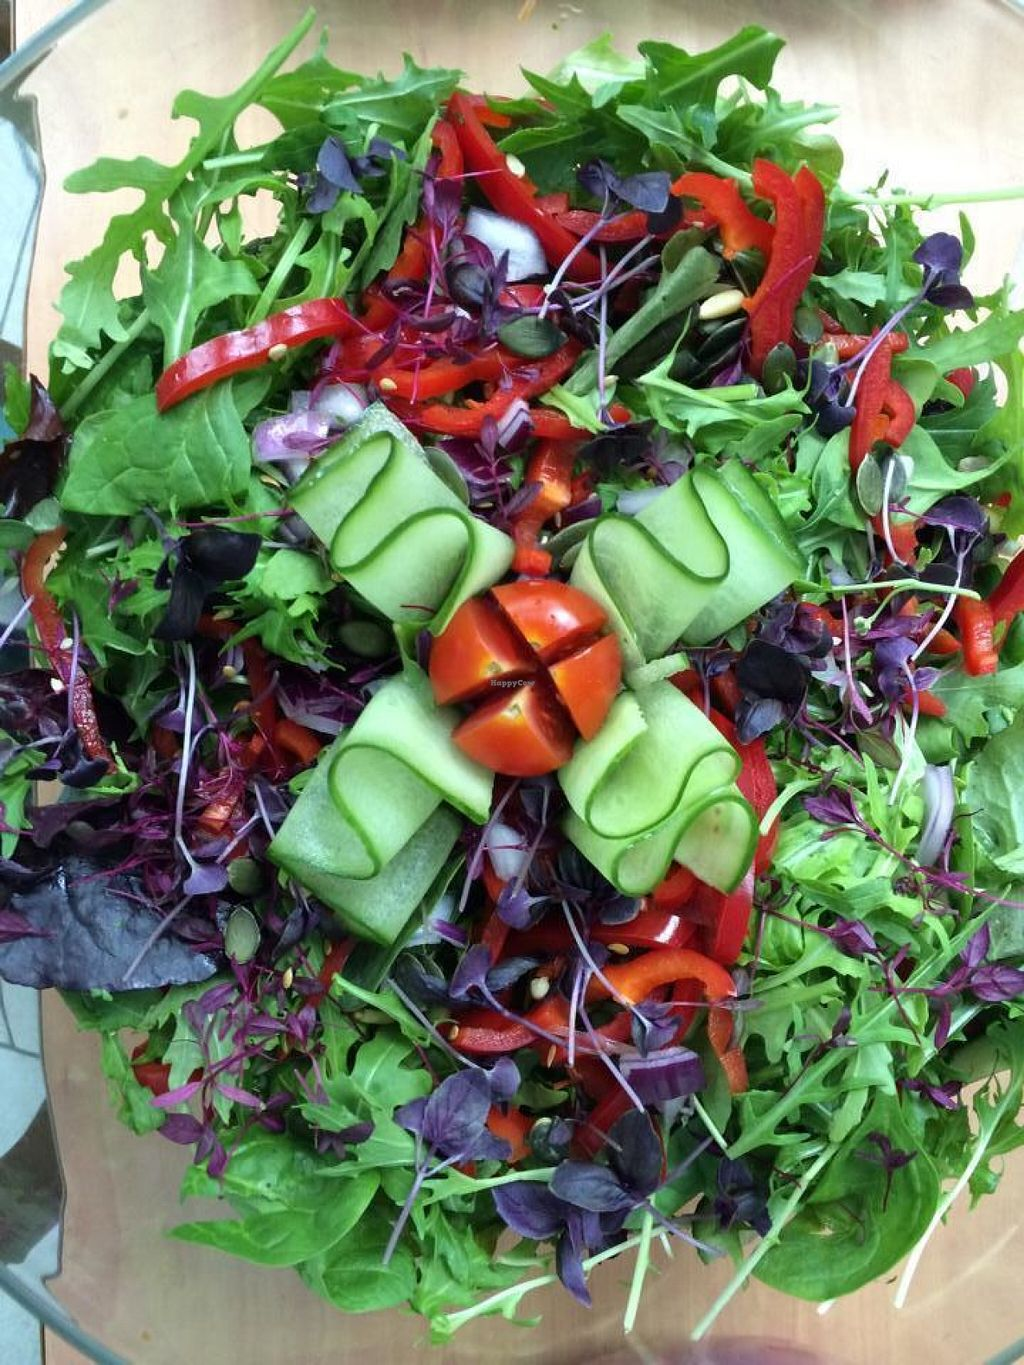 """Photo of Daily Veg  by <a href=""""/members/profile/GarethMoore"""">GarethMoore</a> <br/>Fresh Salads <br/> July 27, 2016  - <a href='/contact/abuse/image/77230/162713'>Report</a>"""